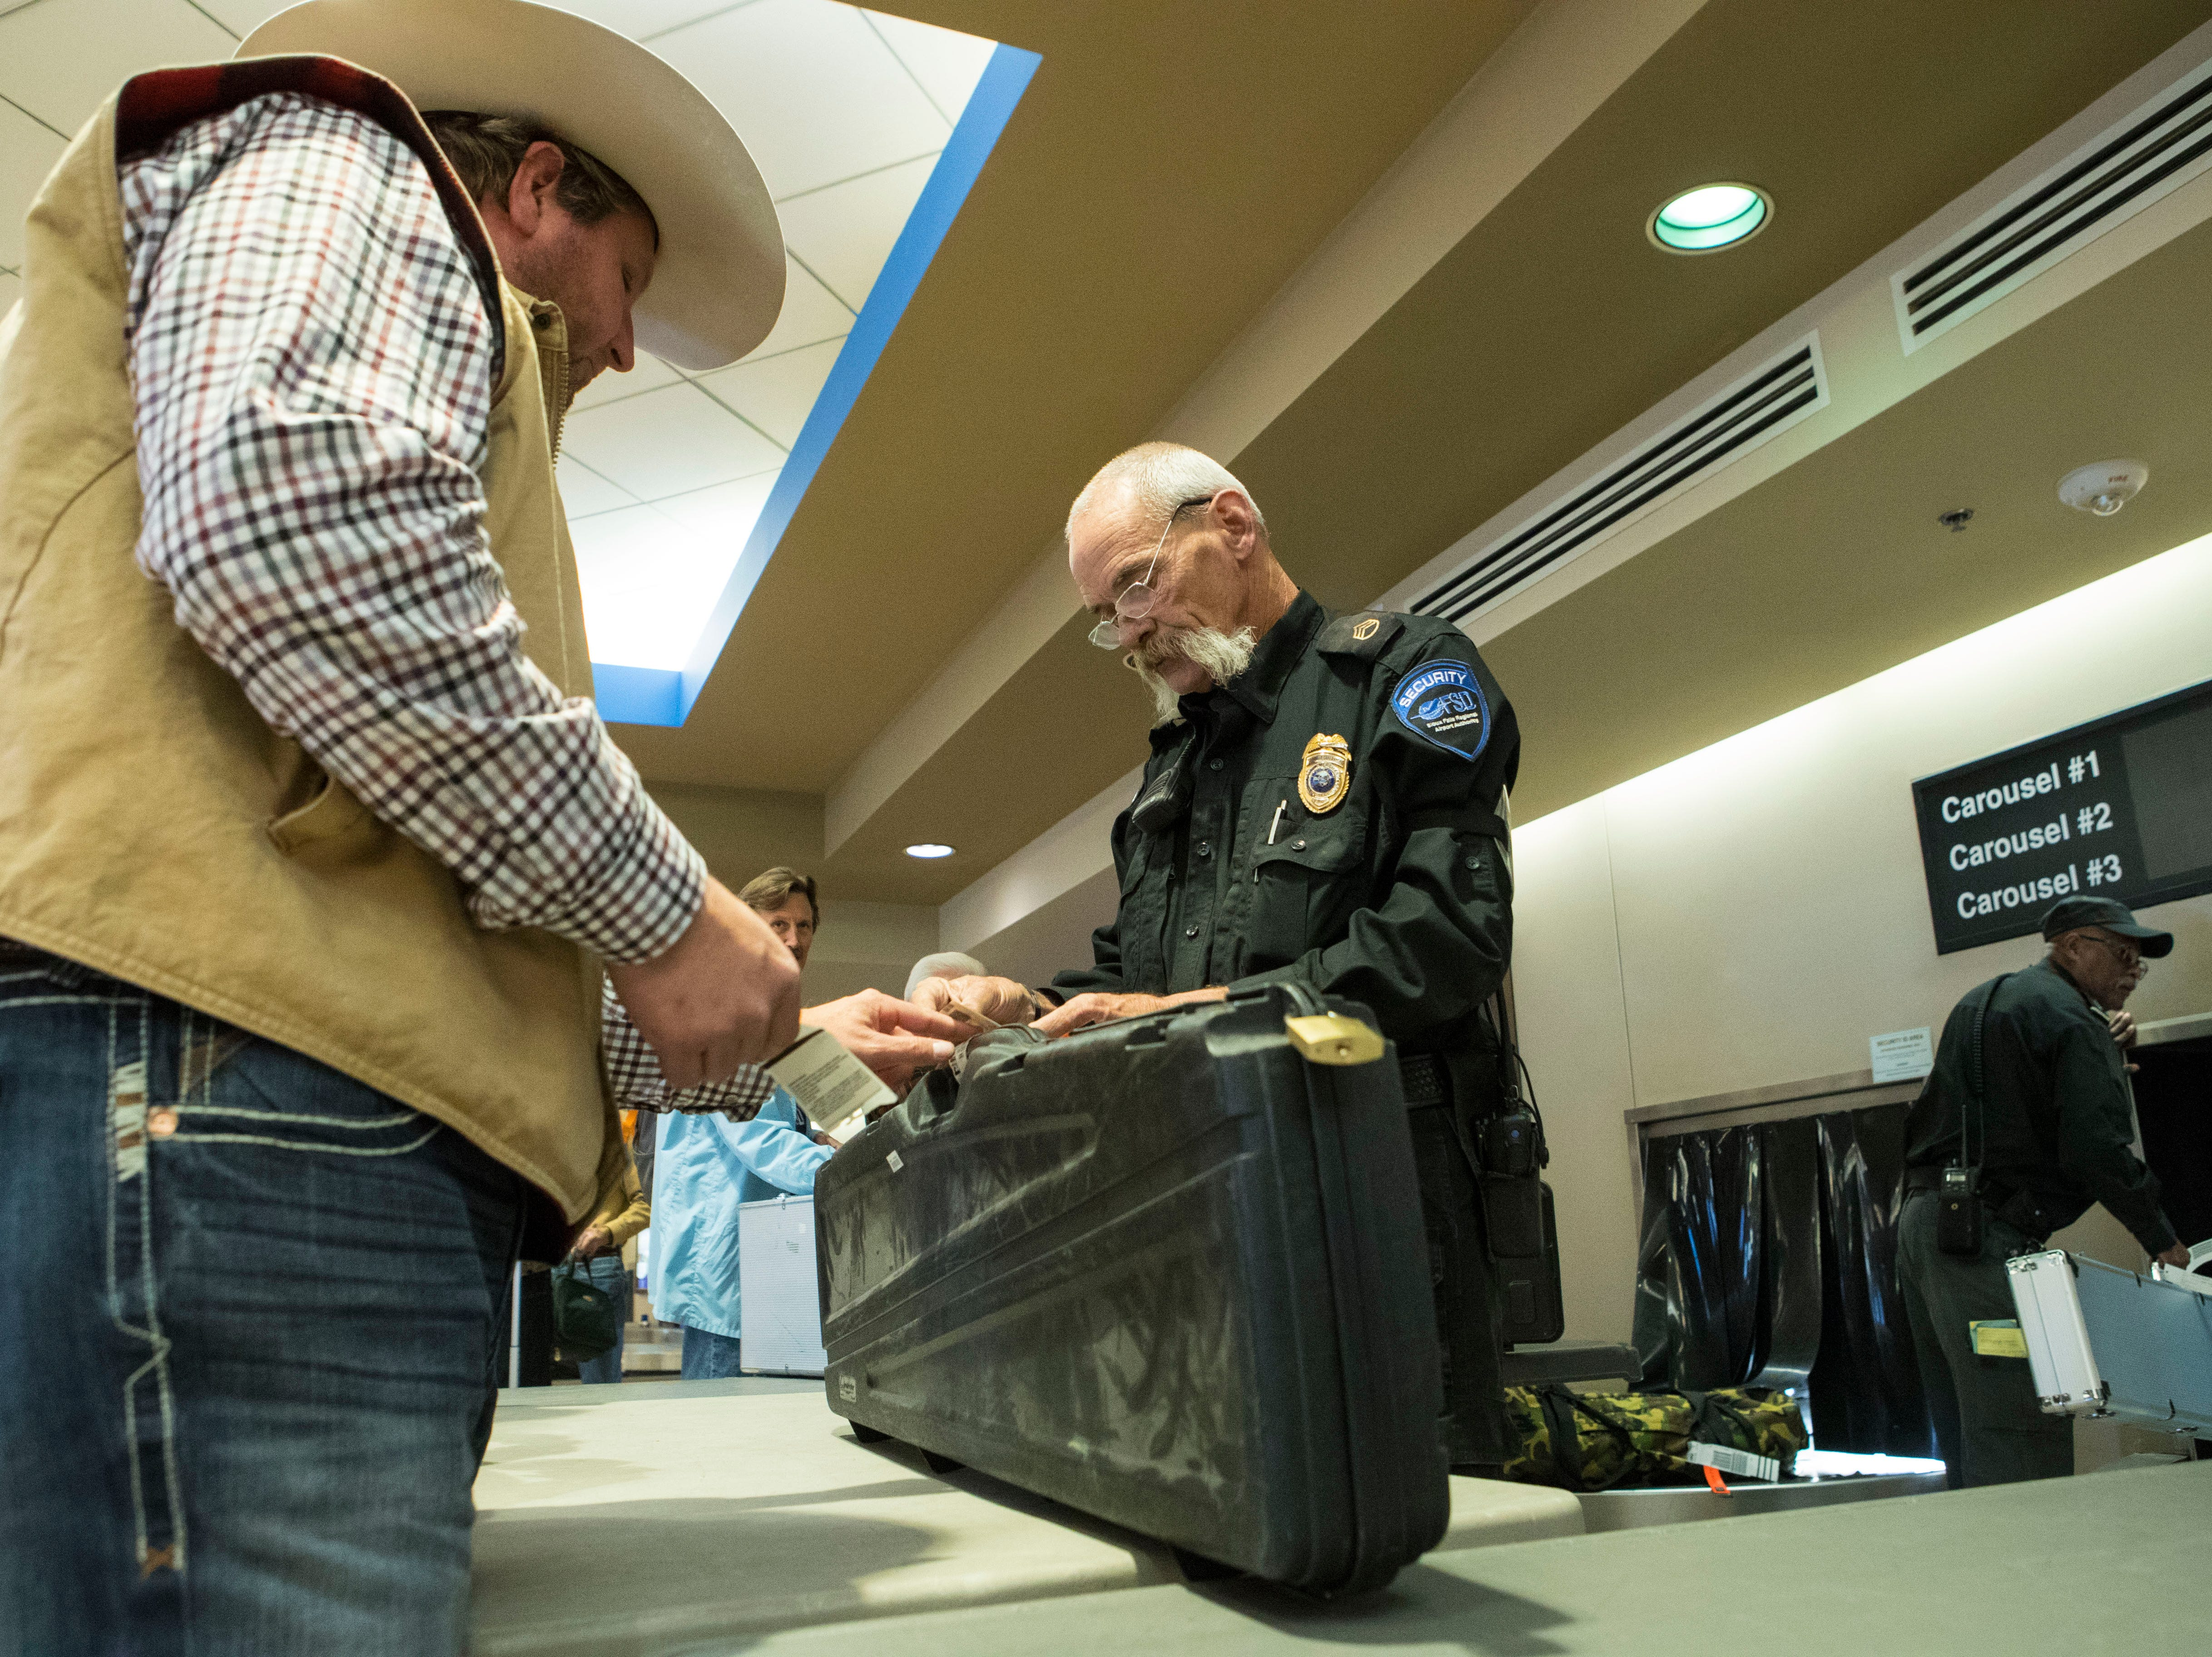 Dale Medlen, security supervisor, looks over Tyler Fischer's information before he gives him his gun at Sioux Falls Regional Airport Friday, Oct. 19, 2018.